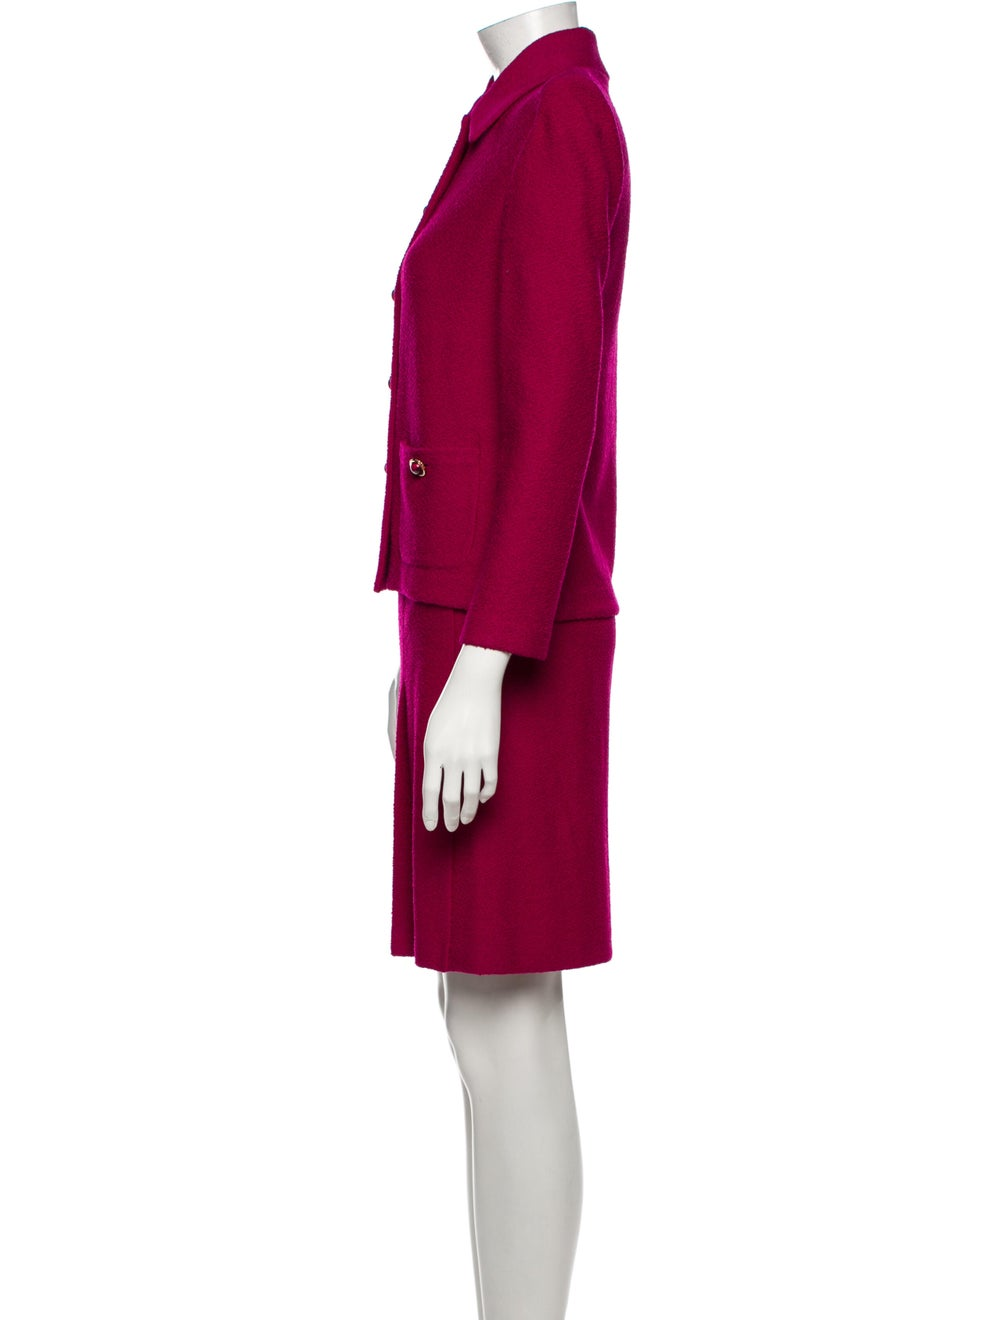 St. John Pleated Accents Skirt Suit Pink - image 2